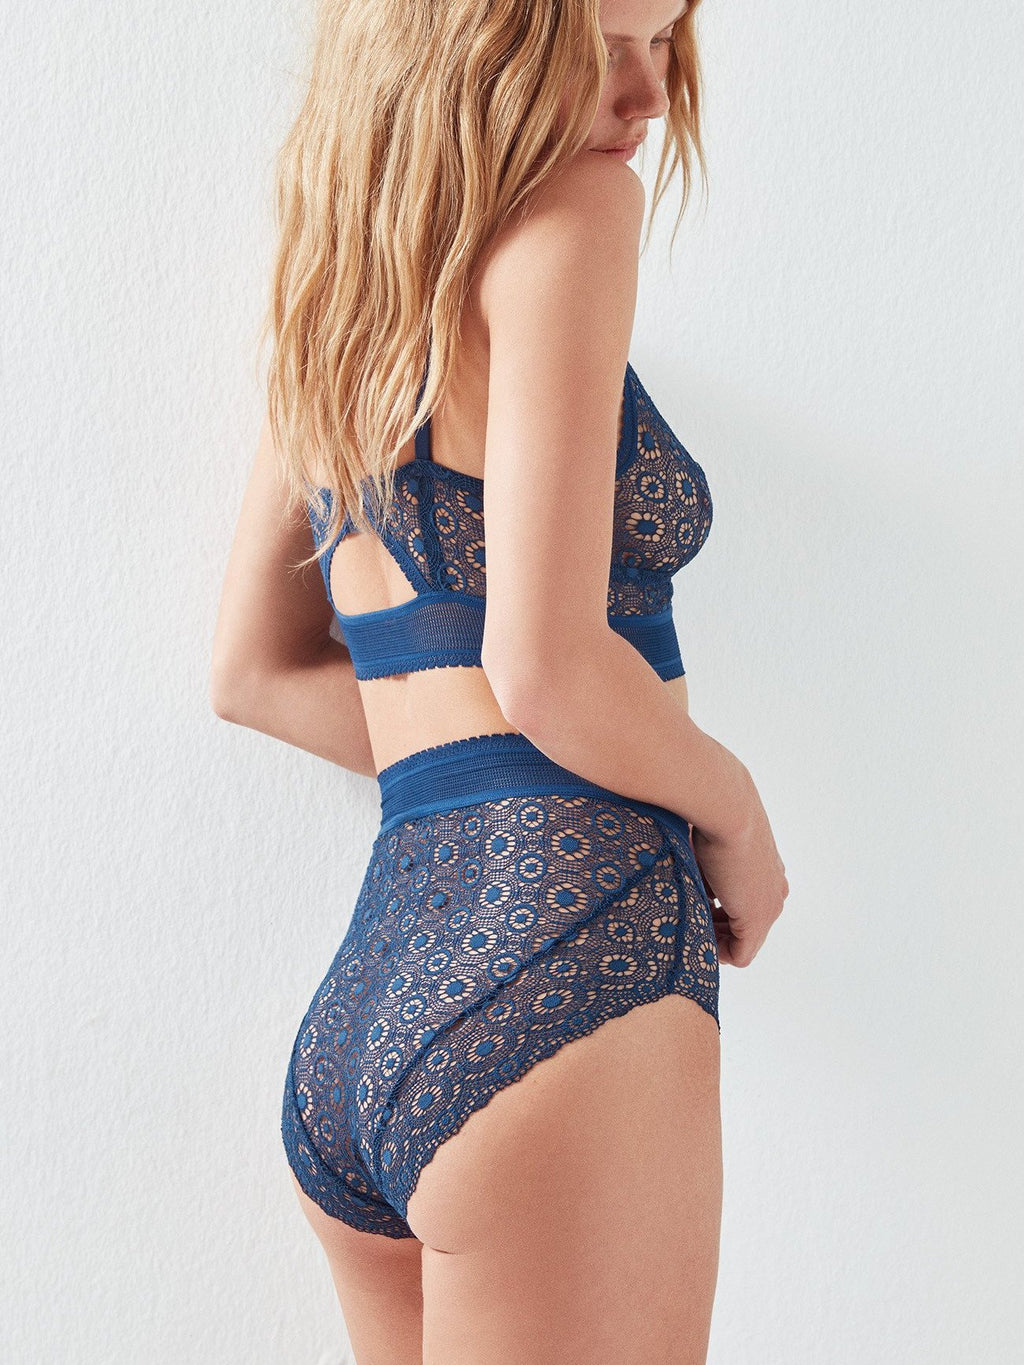 Else lingerie Coachella high-waist brief in midnight blue | Finding Rosie lingerie boutique